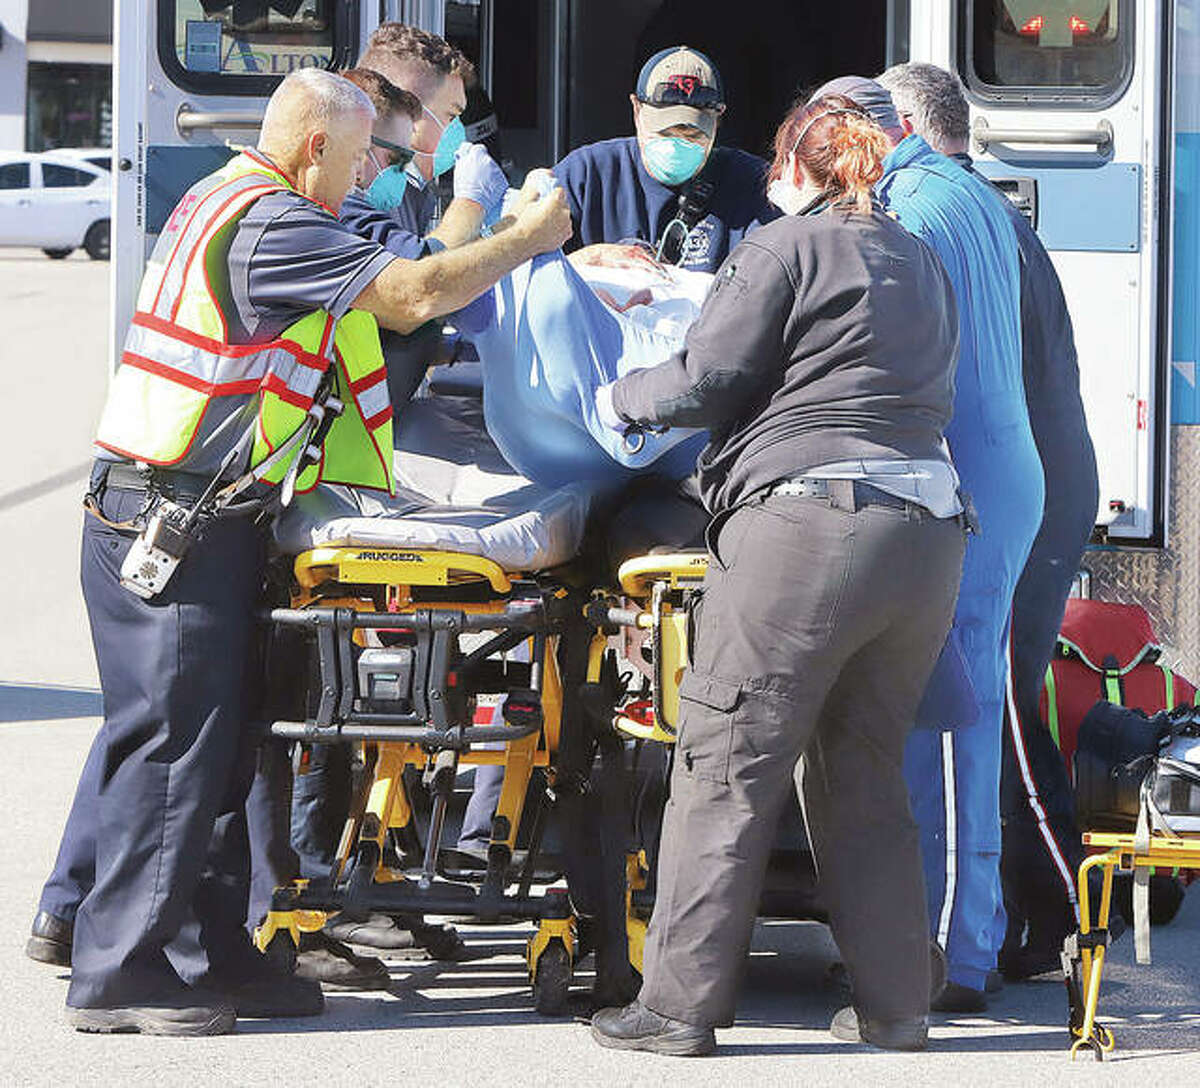 East Alton firefighters and Alton Memorial Ambulance paramedics help ARCH helicopter flight nurses transfer a man to the helicopter's stretcher Thursday in the Eastgate Plaza parking lot after a tree limb being cut off fell on the man in the 100 block of Irwin Street in East Alton.